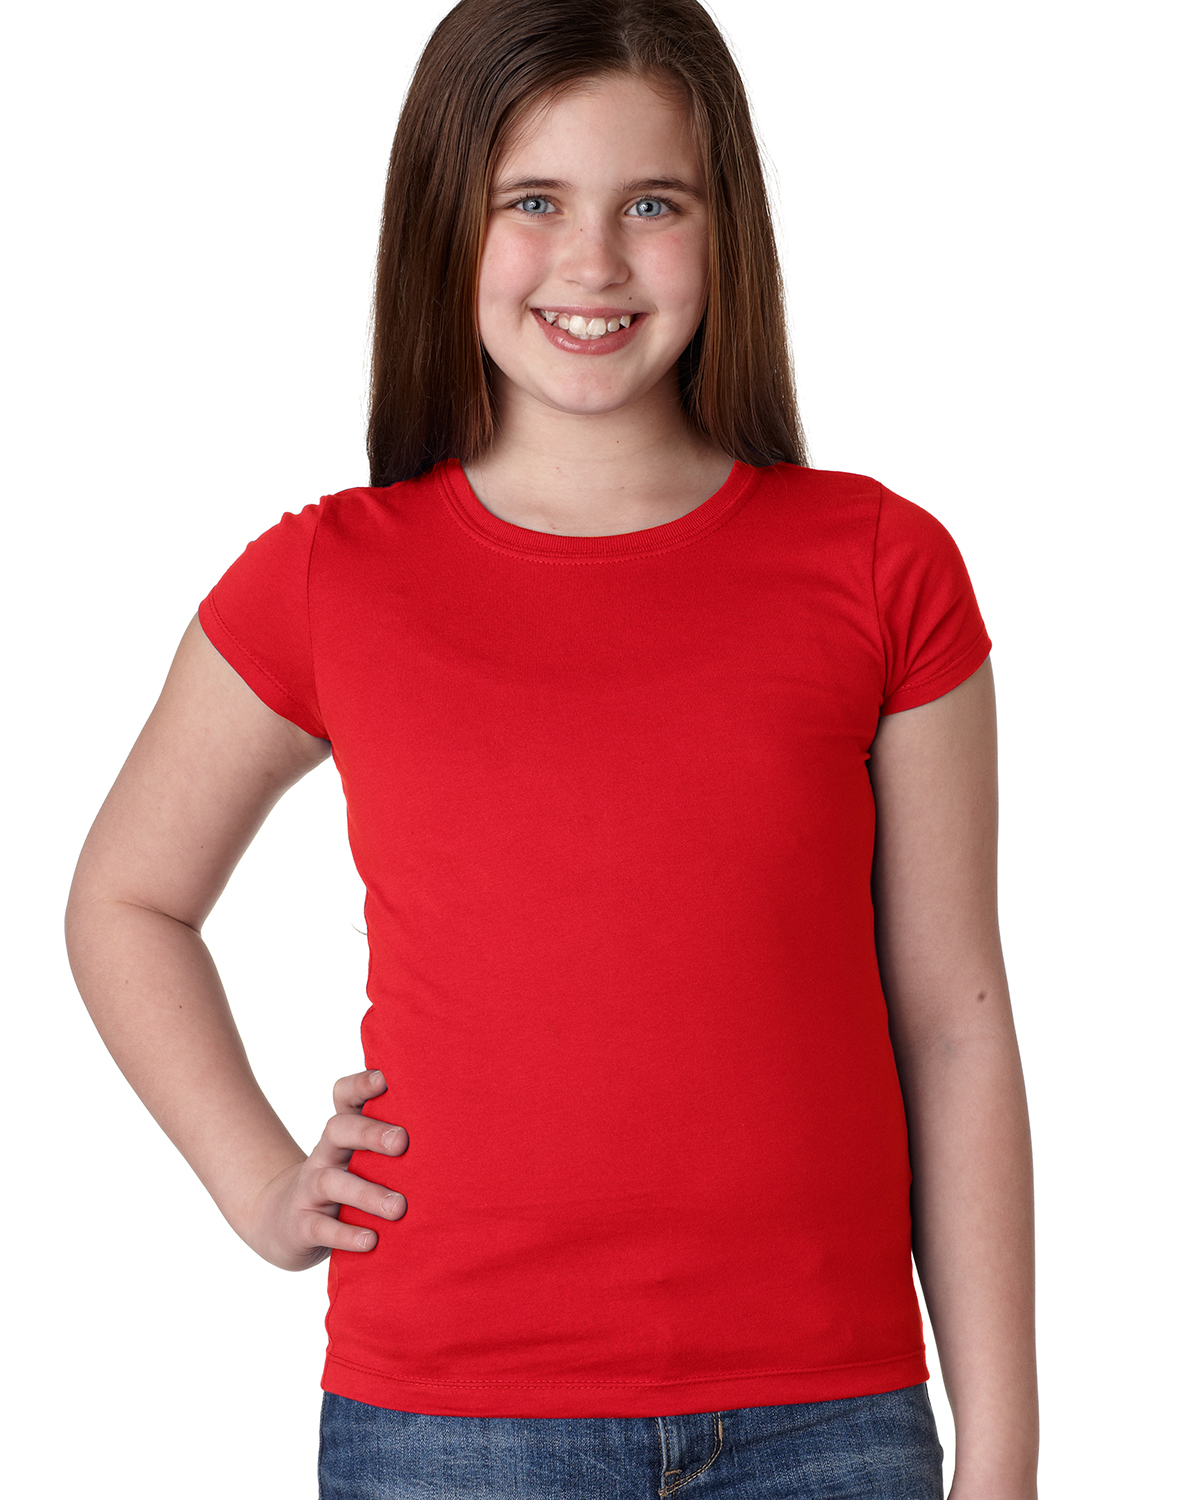 red shirt for girls